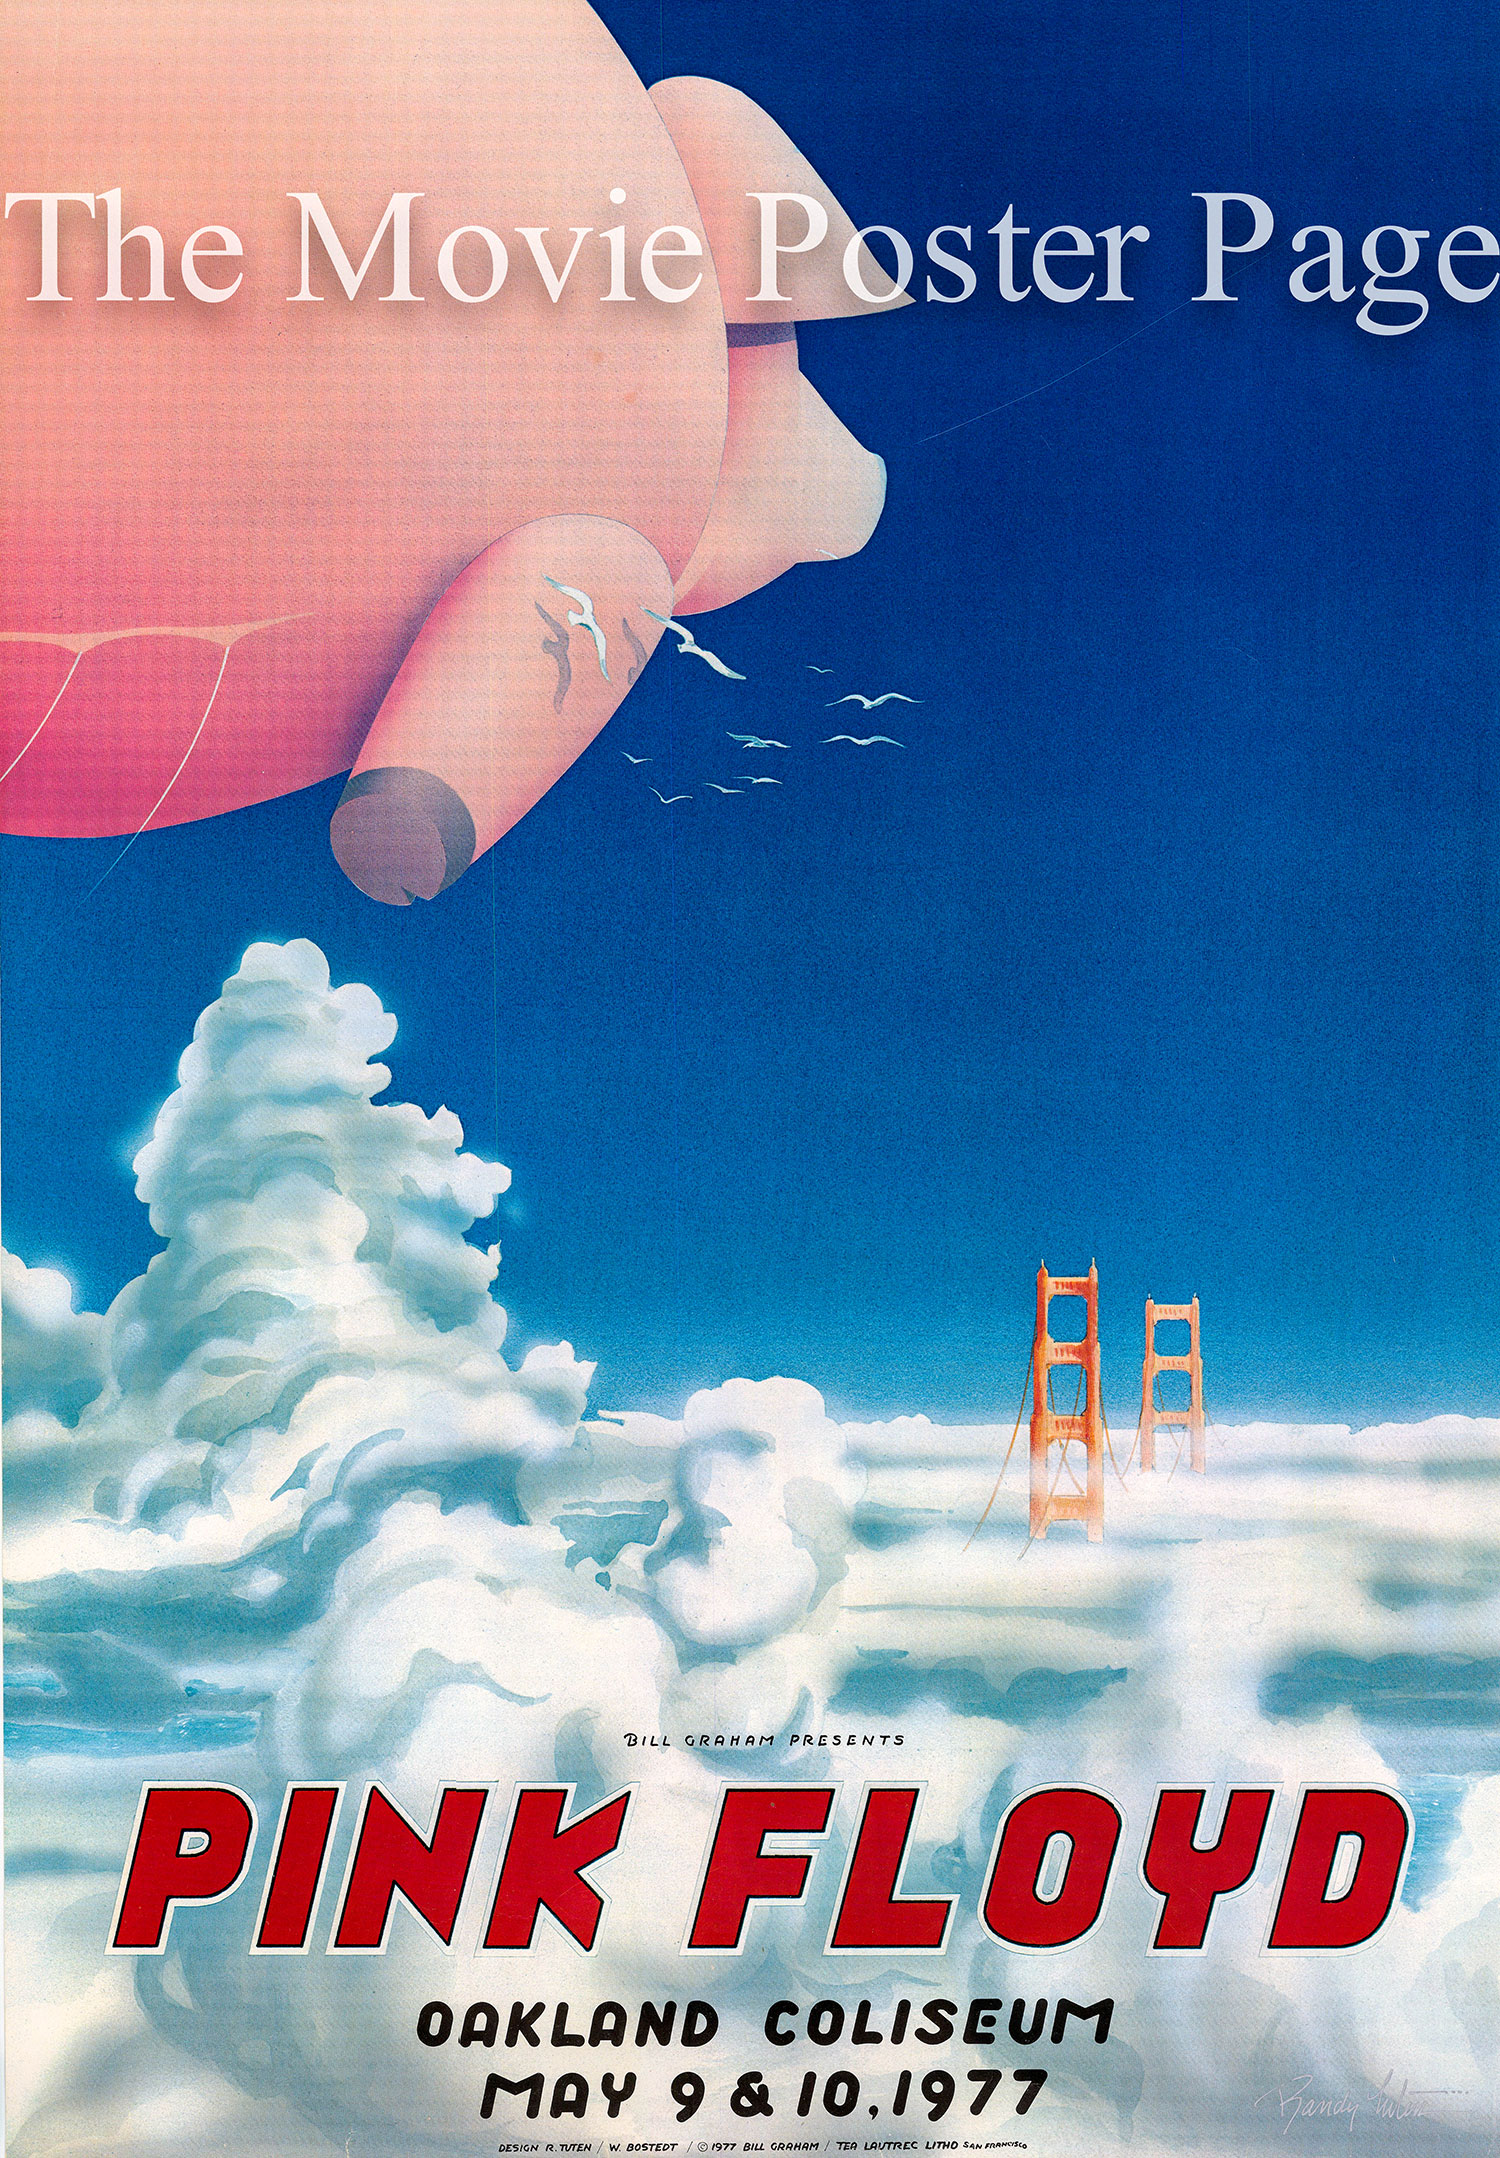 Pictured is a US concert  poster for May 1977 Pink Floyd Oakland Coliseum concert.